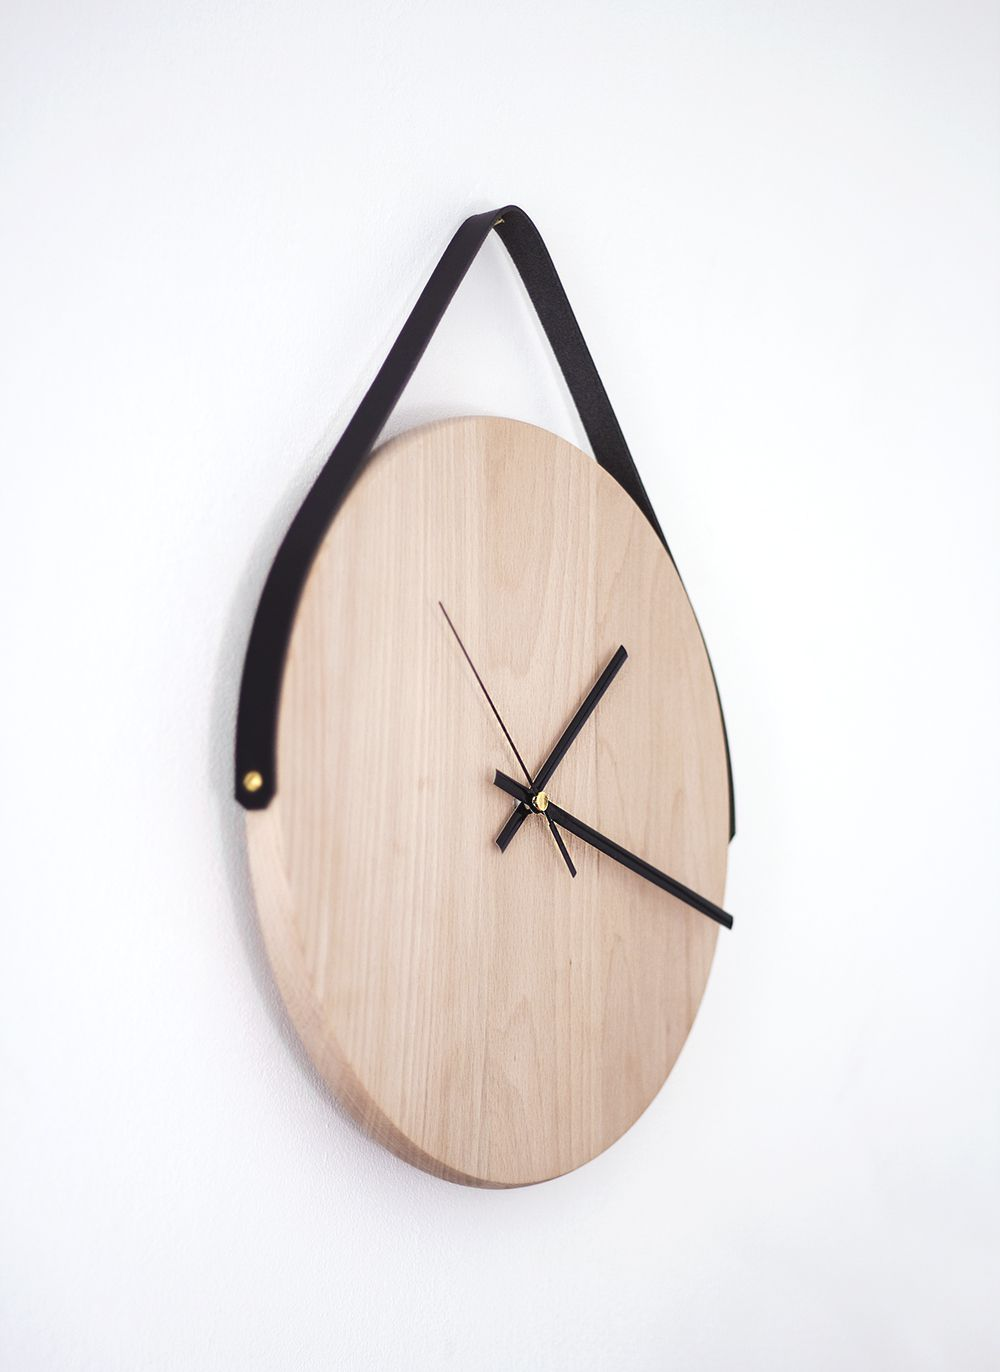 wood decor wooden home clock house original recycling